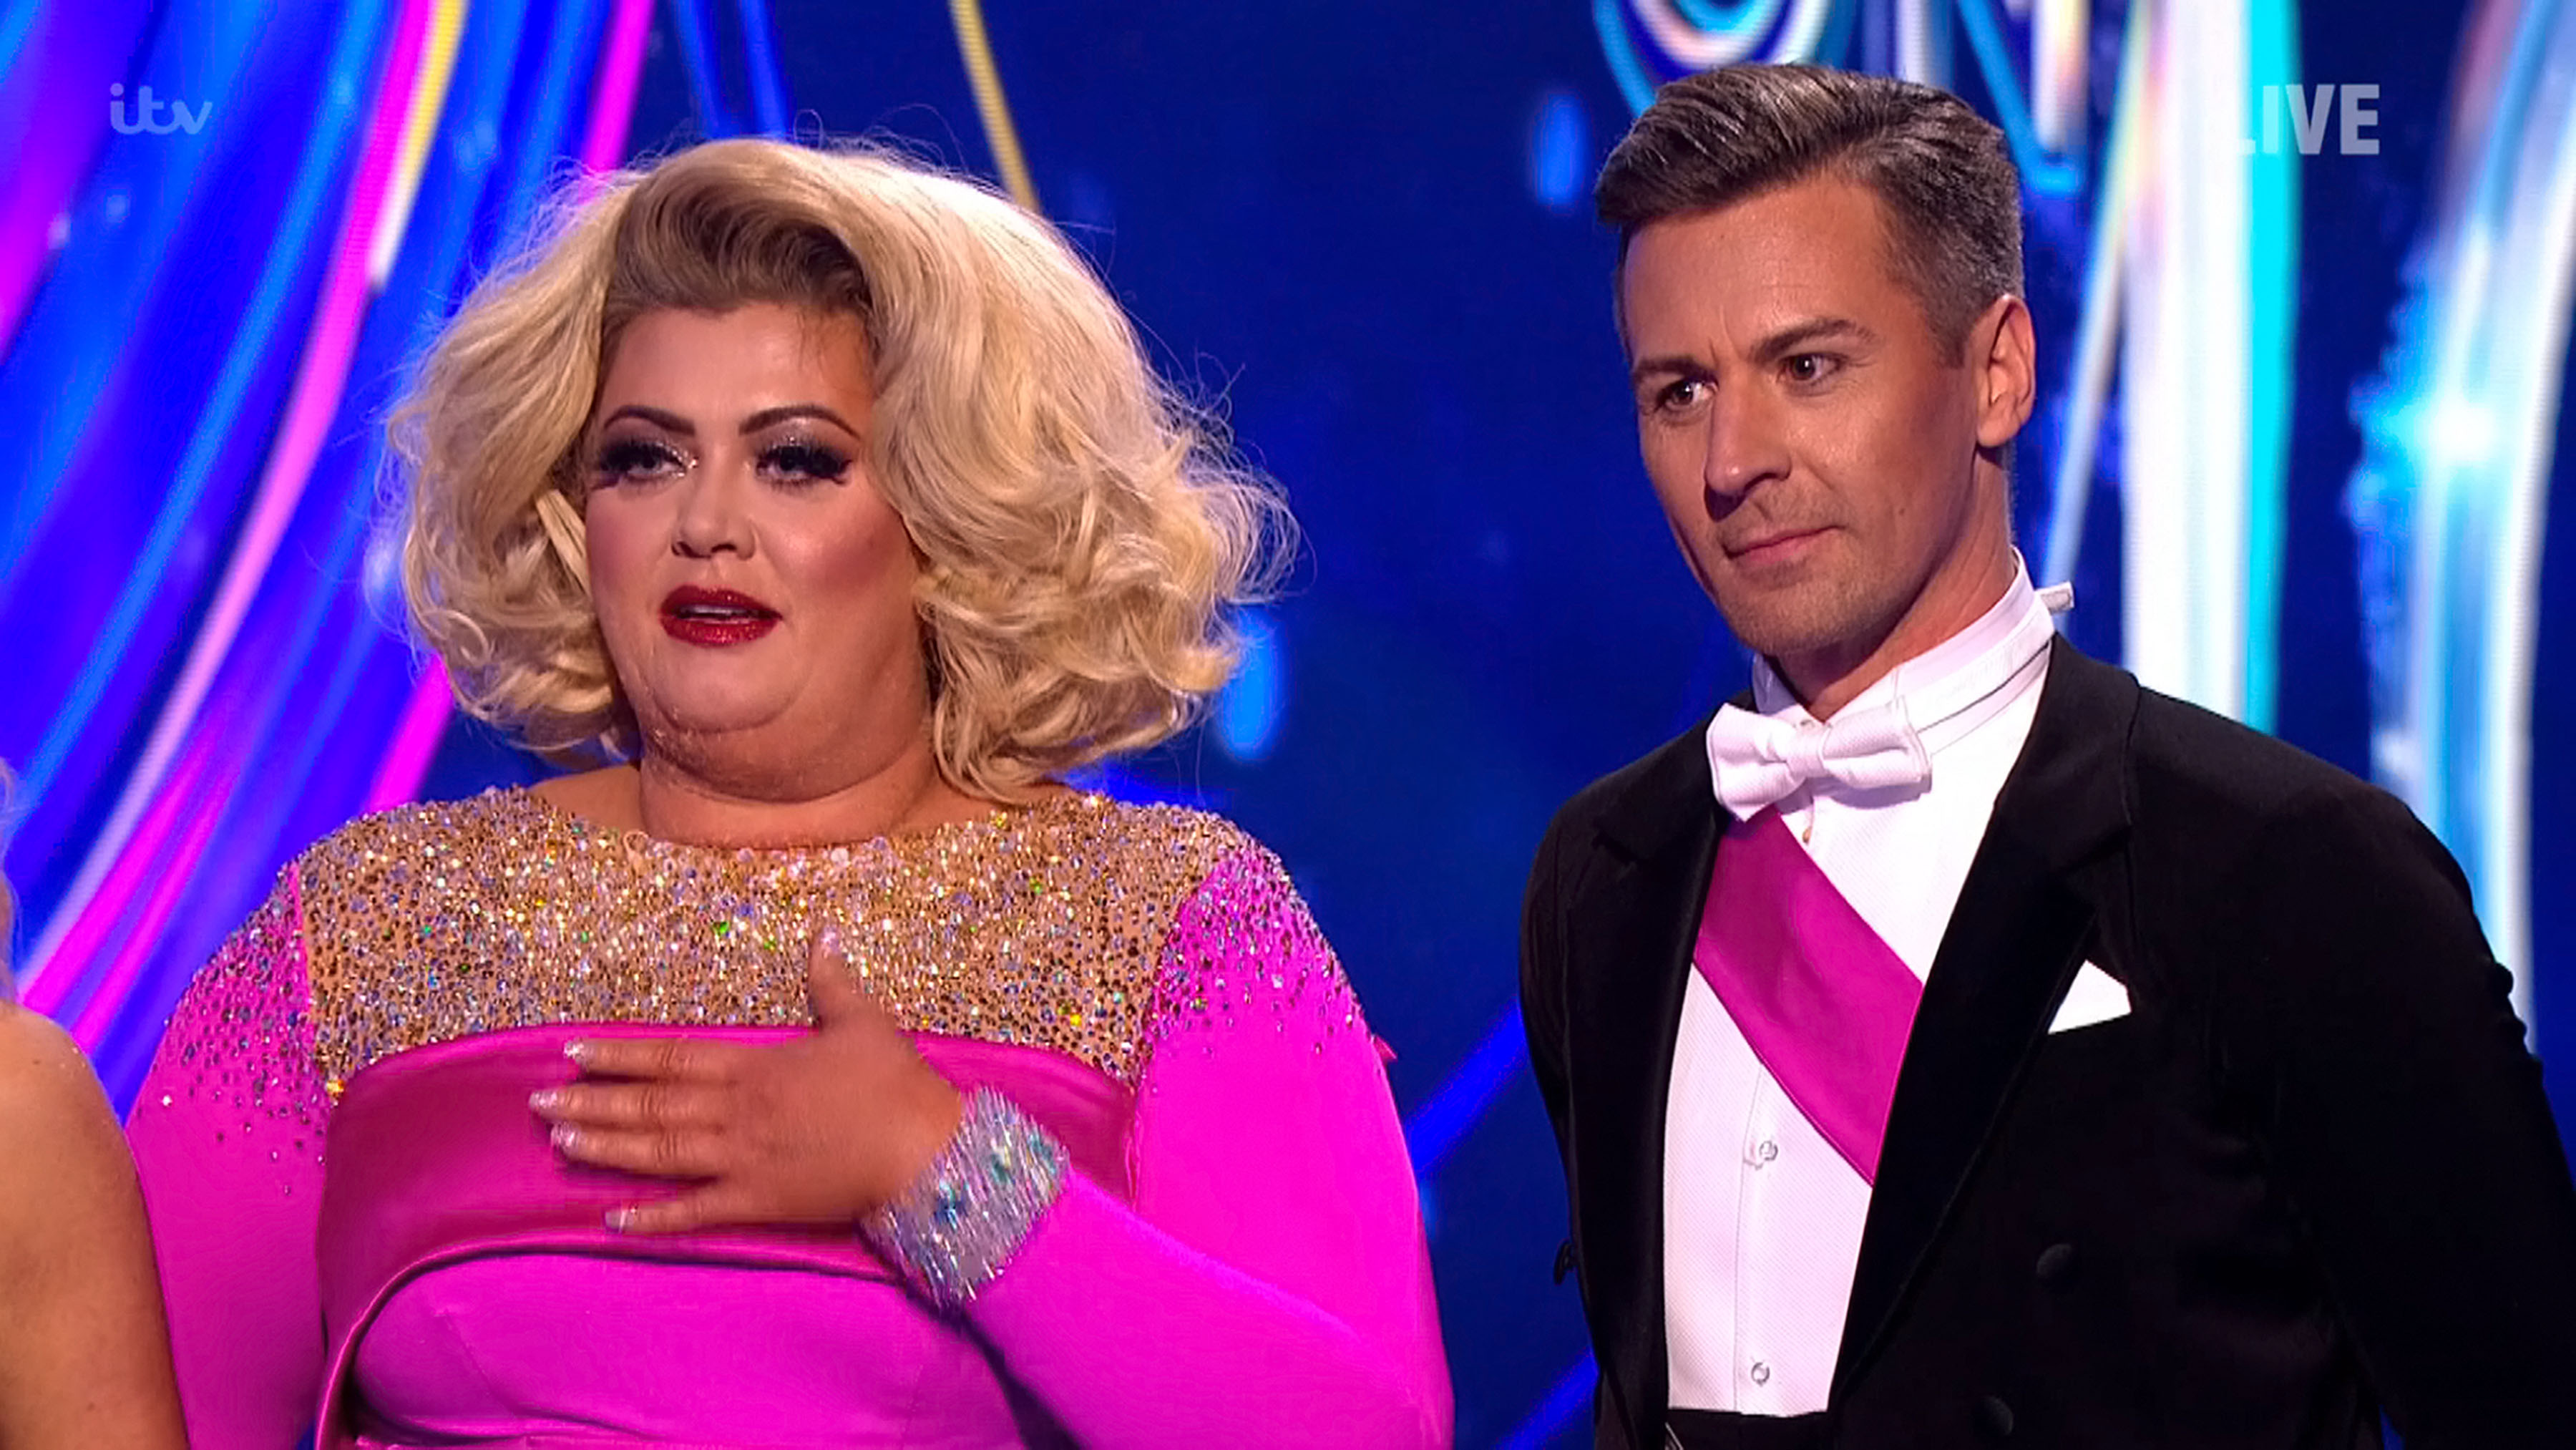 Dancing On Ice's Torvill and Dean reckon it could be 'too little too late' for Gemma Collins amid clash with Jason Gardiner